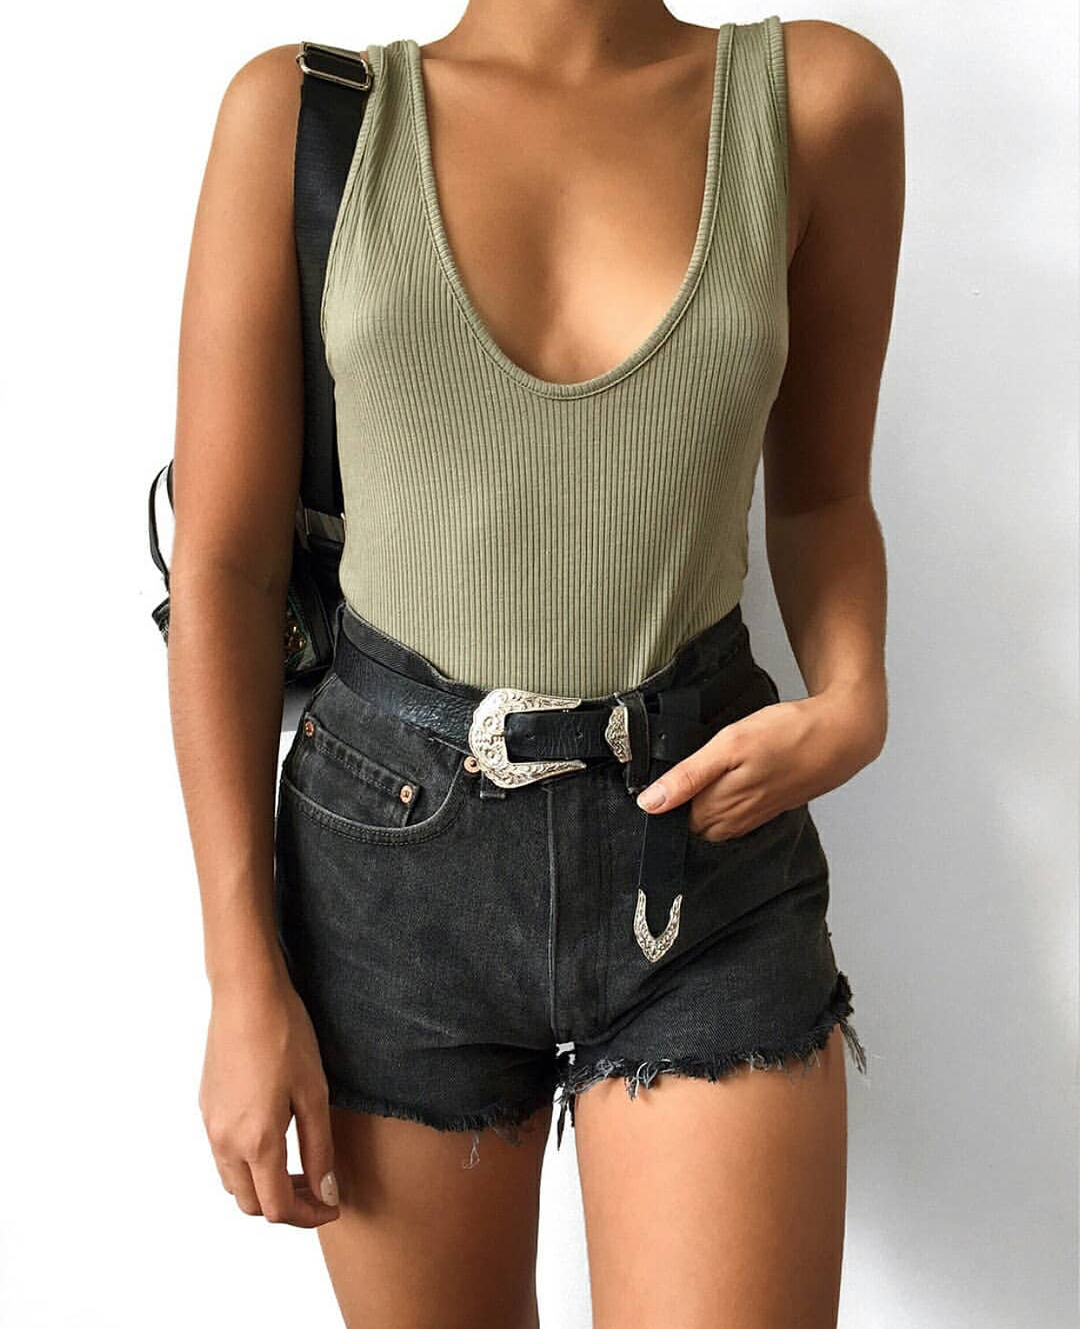 Khaki Green Bodysuit And Black Denim Shorts For Summer 2020